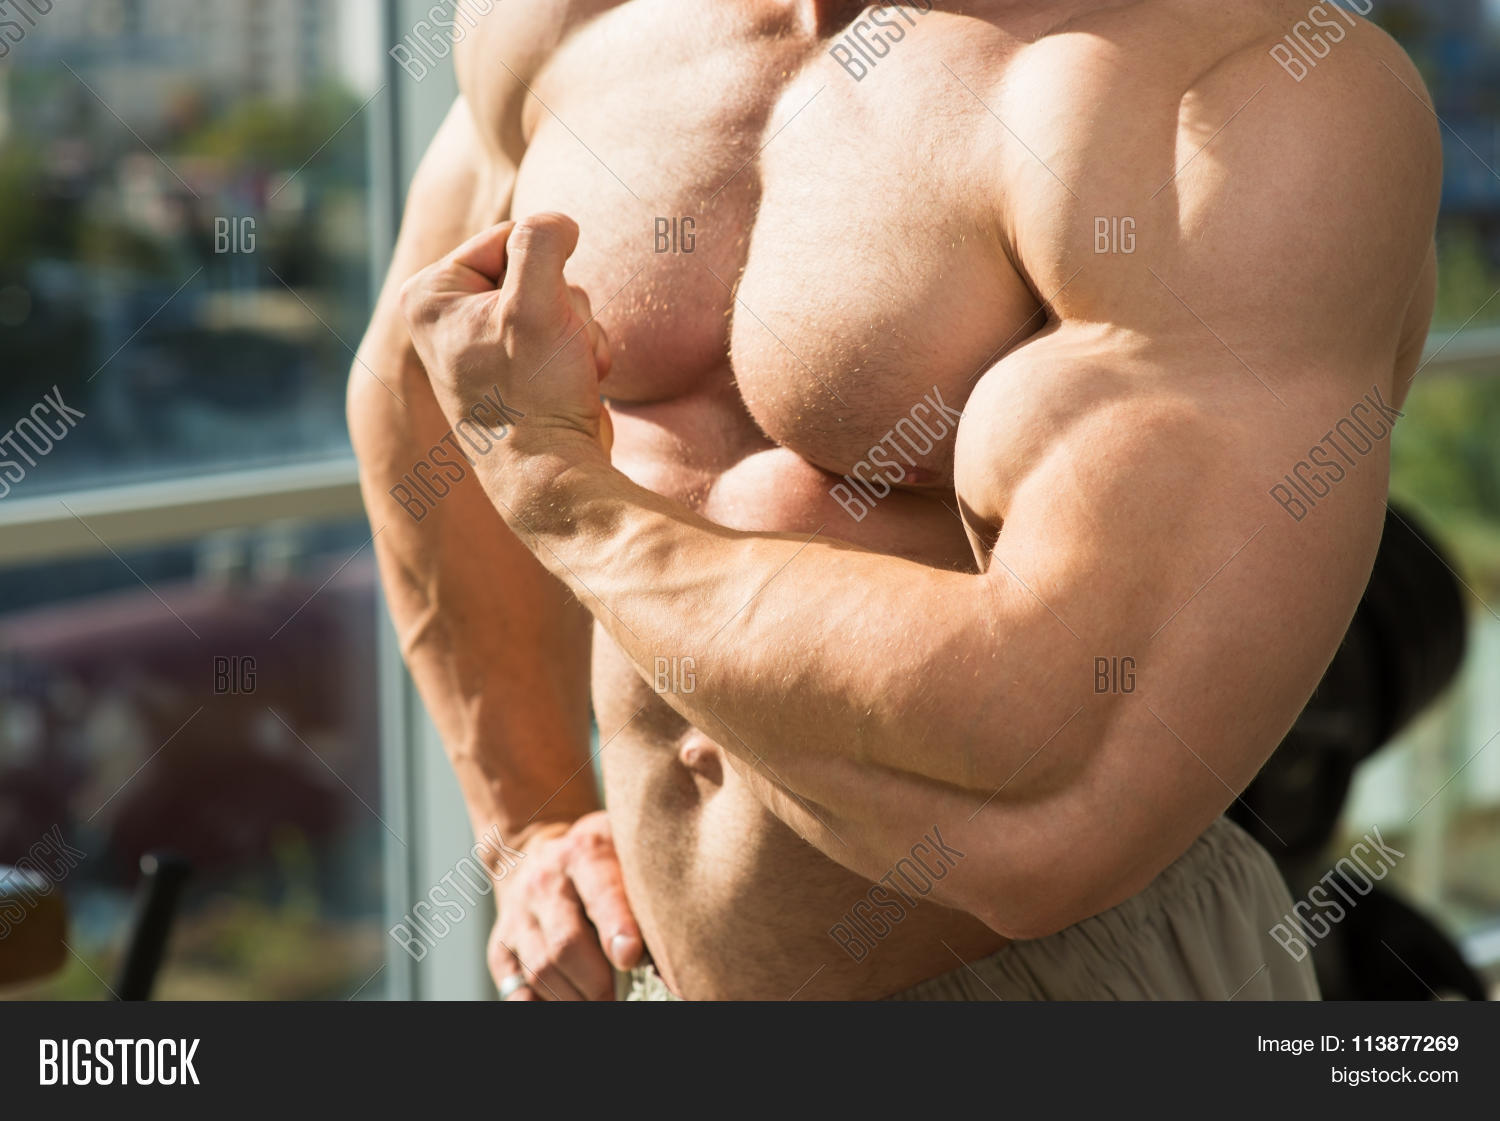 Muscular Torso Arms Image Photo Free Trial Bigstock